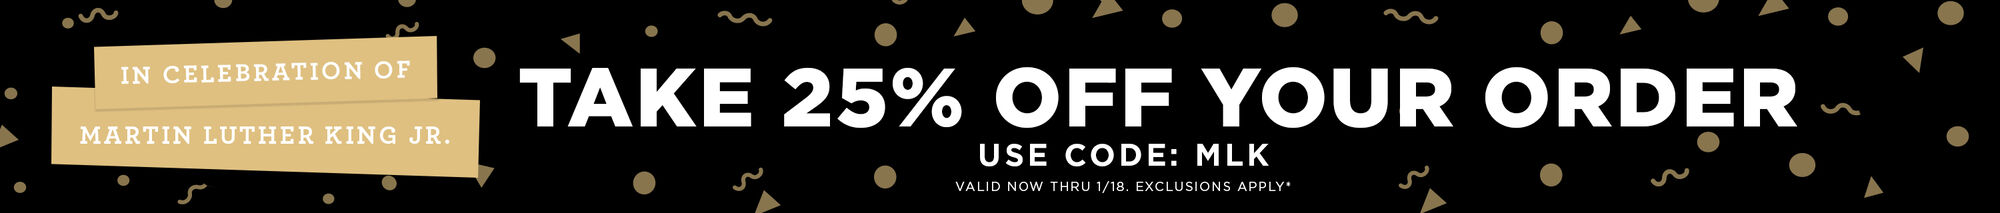 In celebration of Martin Luther King Day Jr. Take 25% OFF your order - use code: MLK - valid now thru 1/18 - exclusions apply